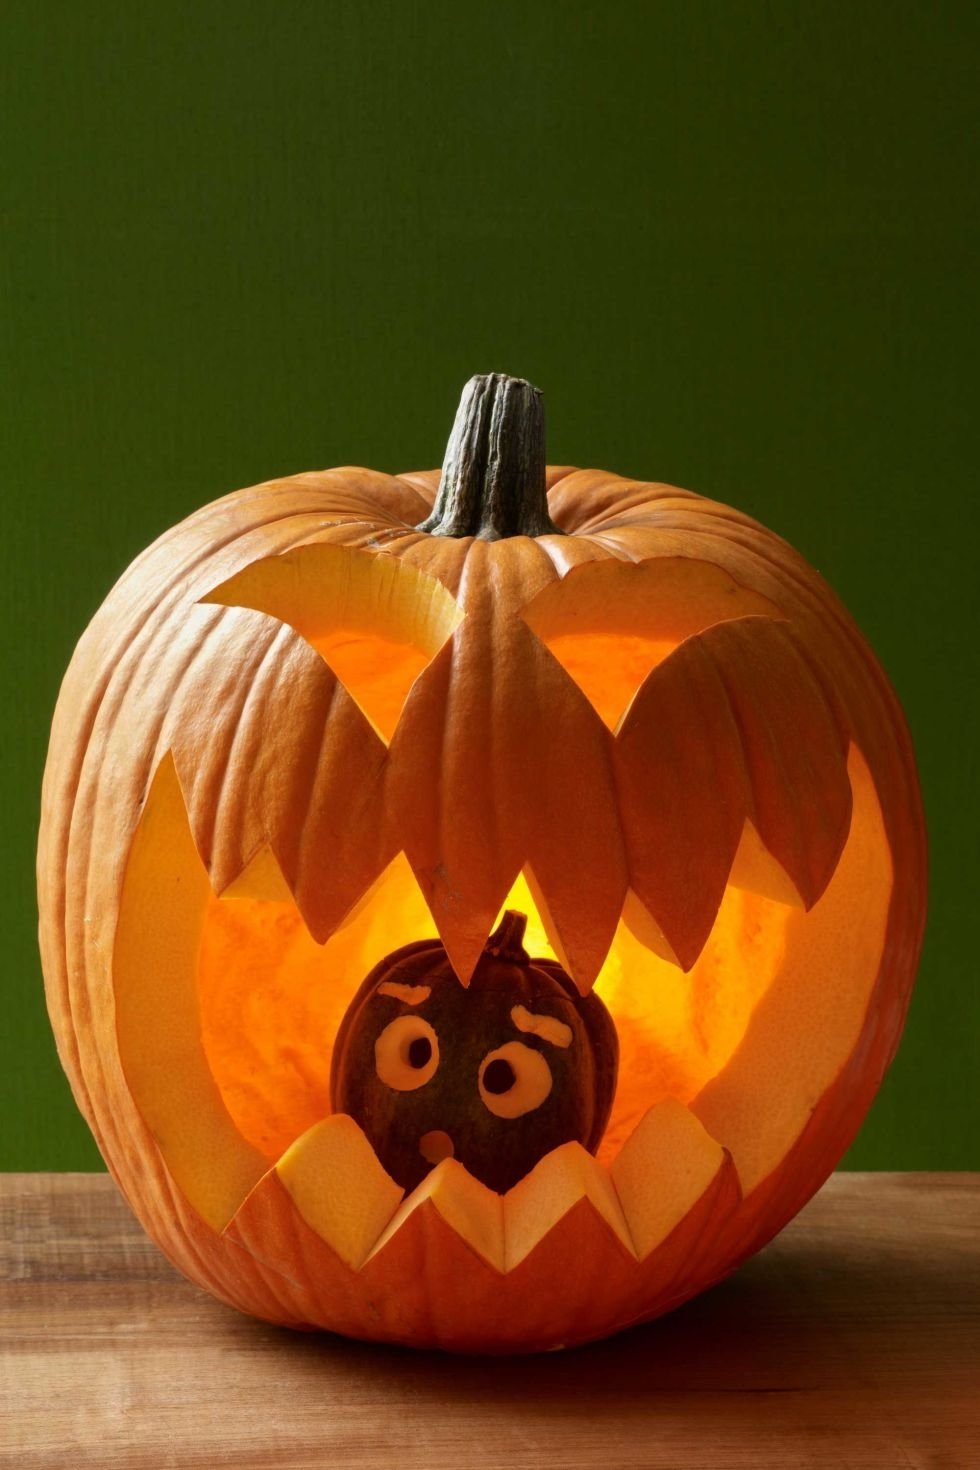 10 Lovable Cool And Easy Pumpkin Carving Ideas pumpkin carving ideas 2017 download halloween pumpkin carving 1 2020